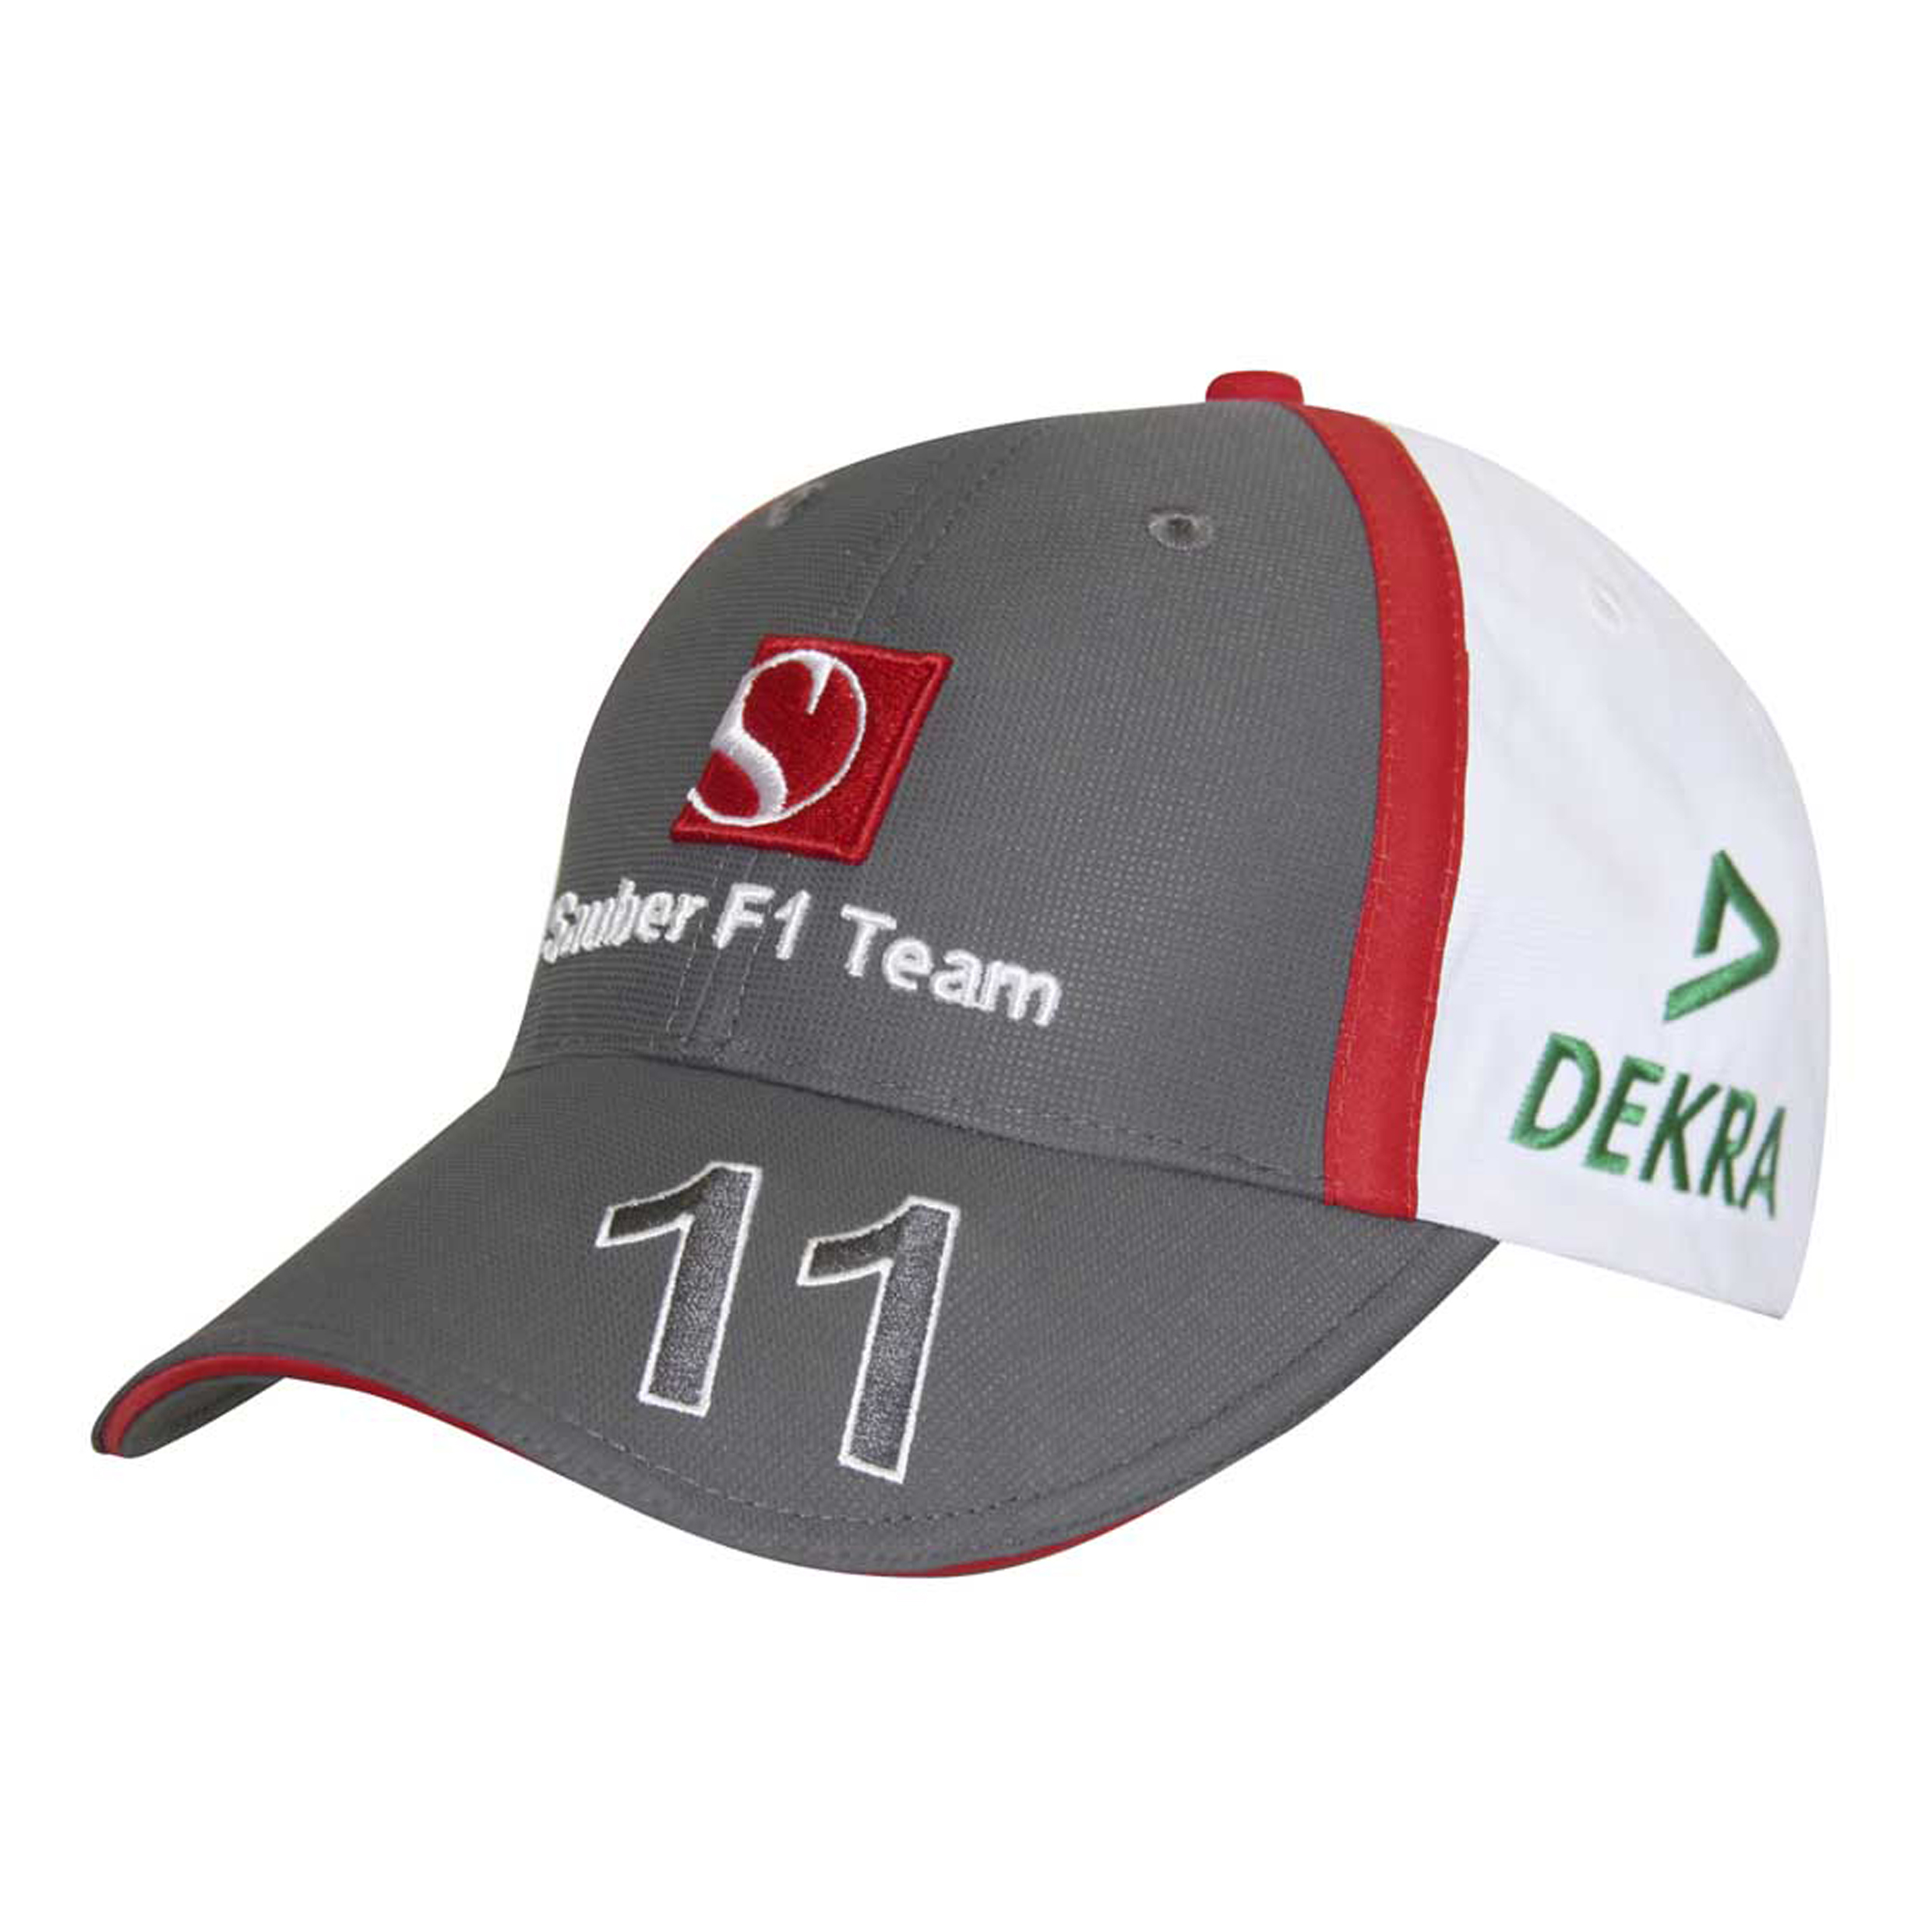 Sauber F1 Team 2013 Nico Driver Cap